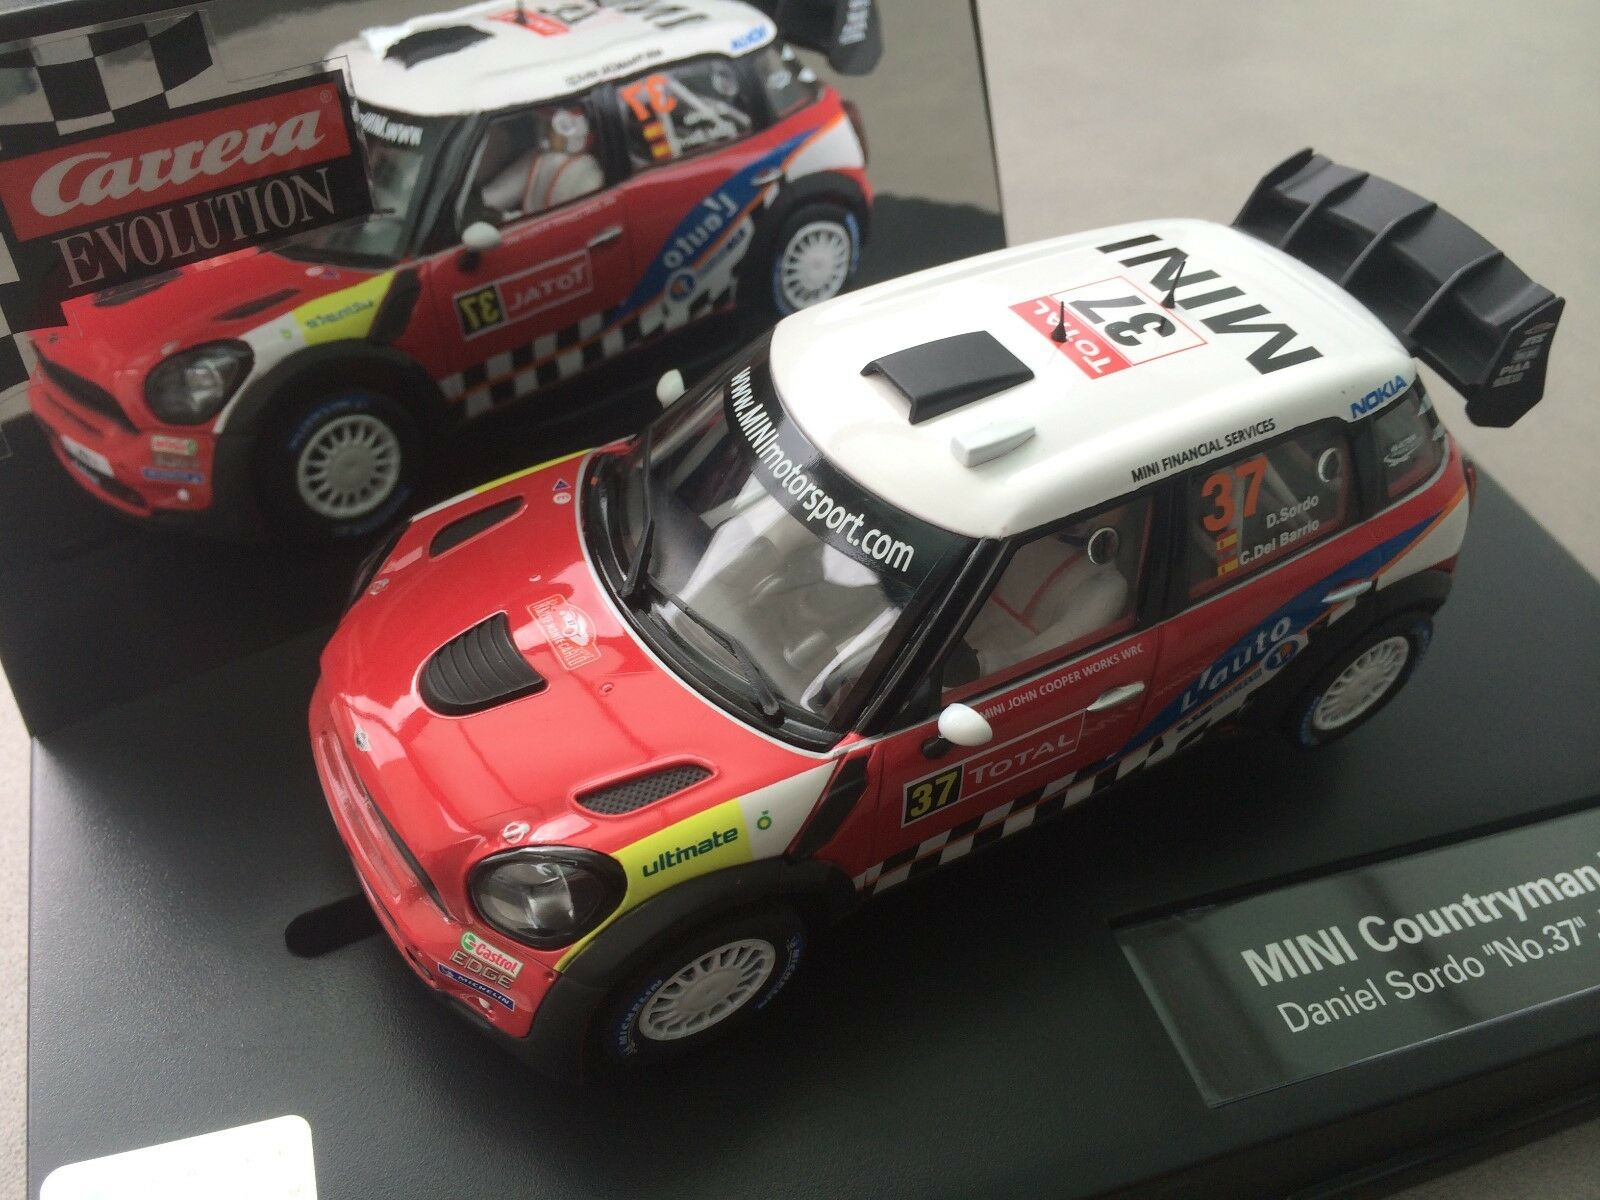 Carrera Evolution 27405 Mini Countryman WRC Daniel Sordo   no. 37   2012 OVP